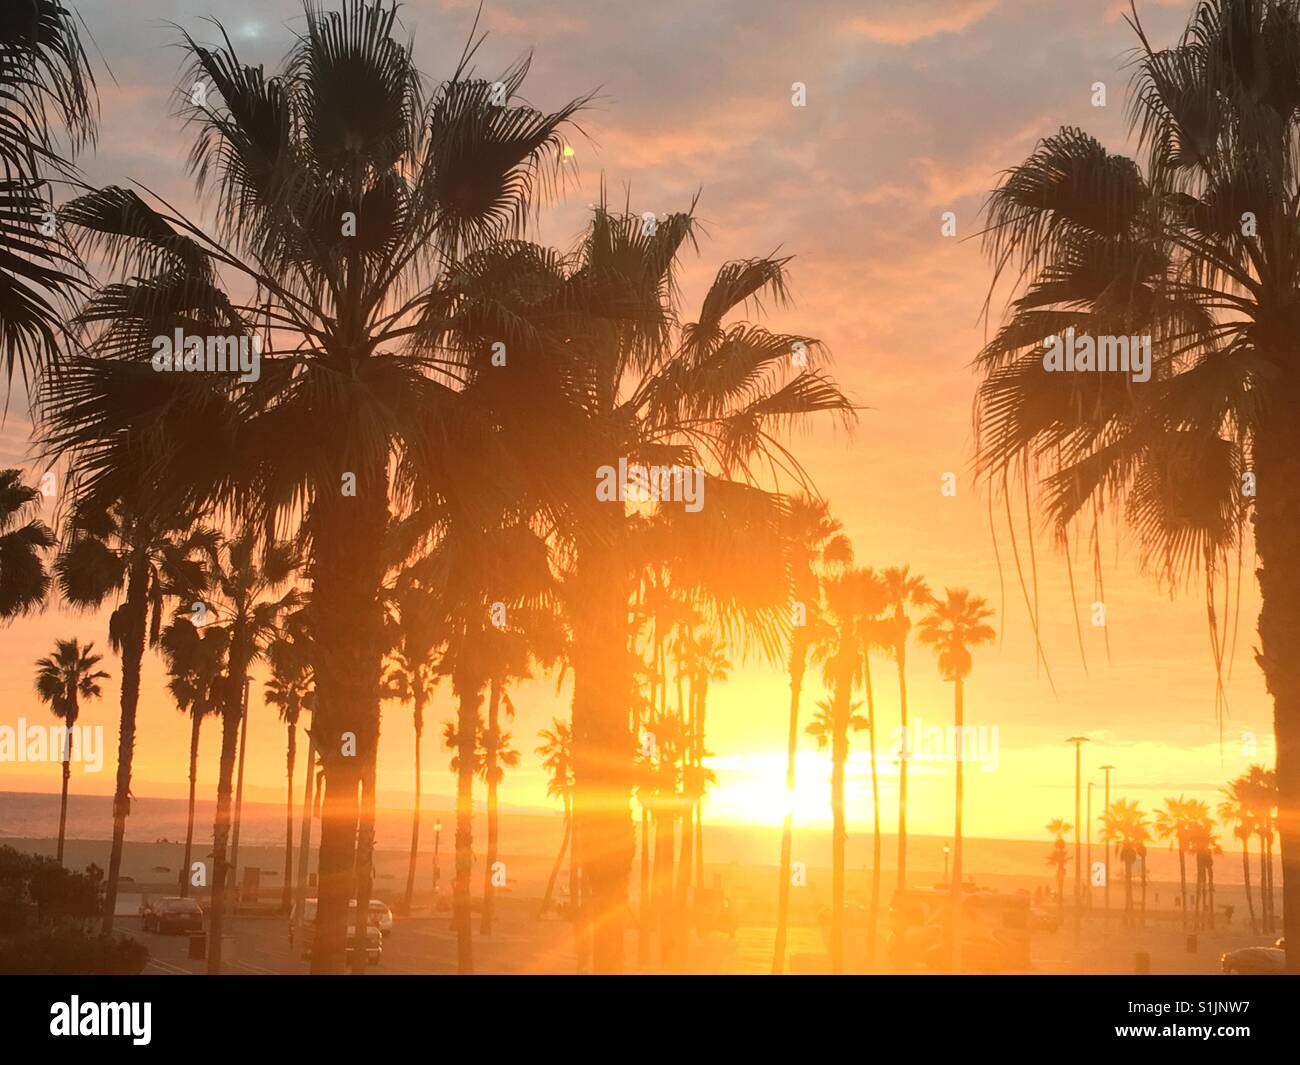 California Sunset In Huntington Beach Stock Photo Alamy